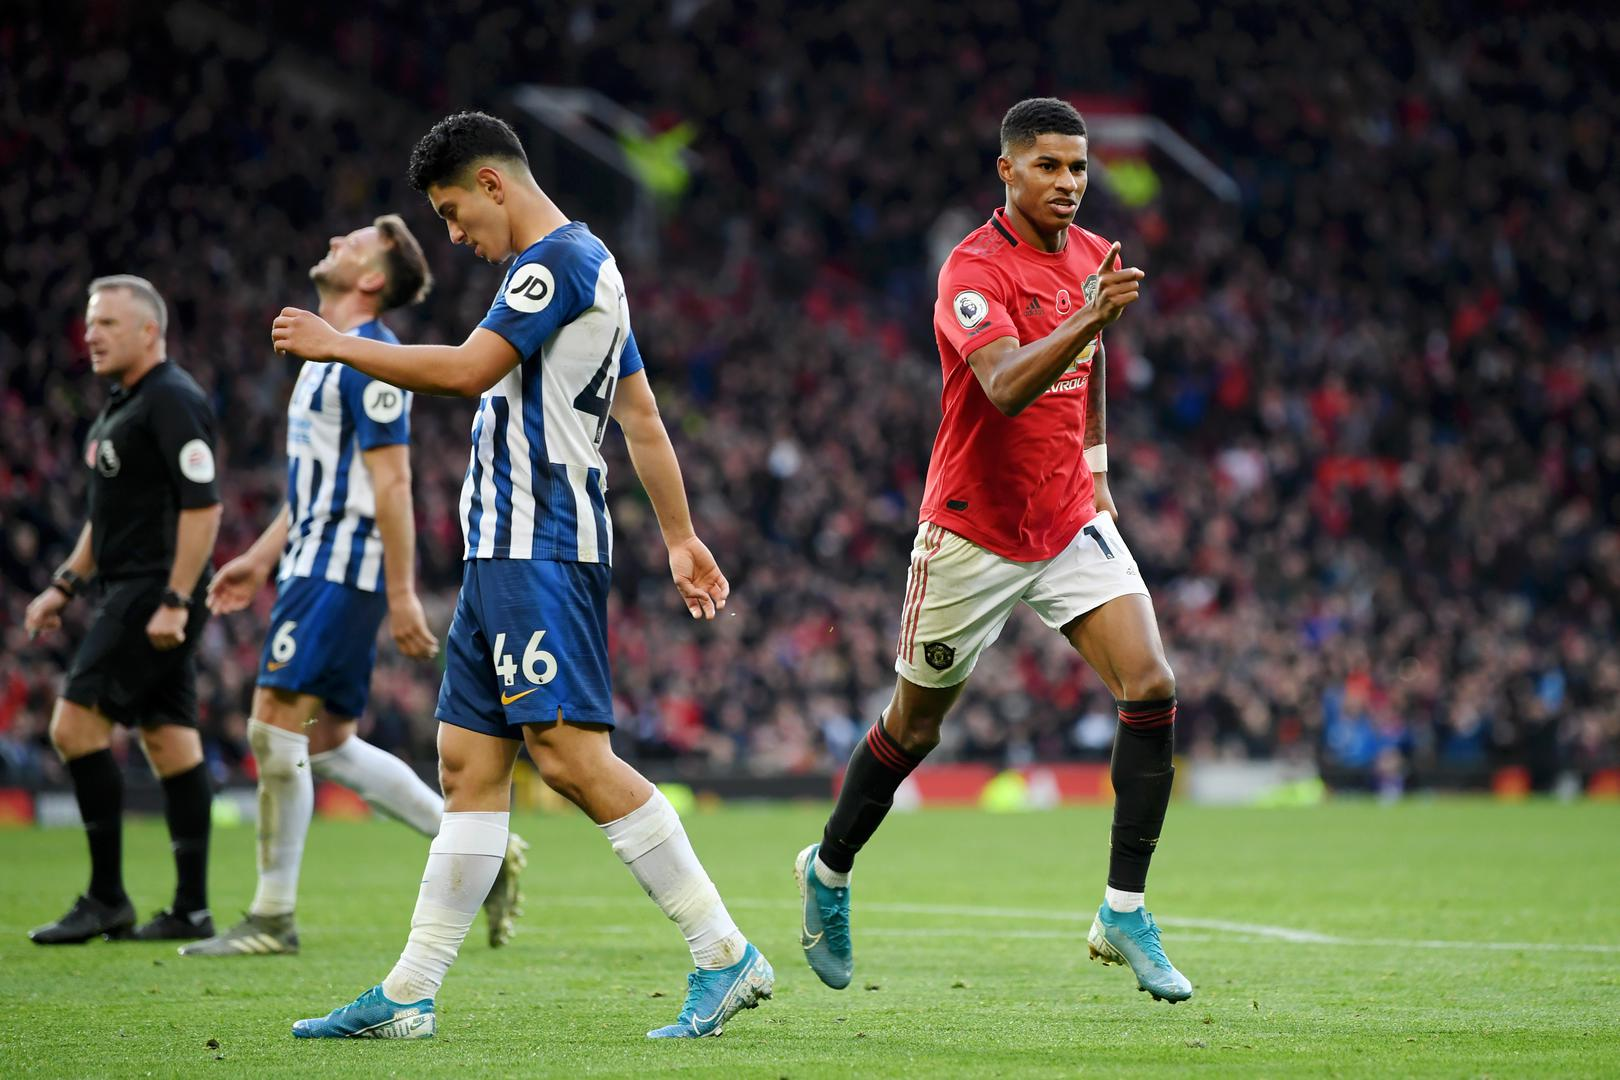 Marcus Rashford celebrates after scoring Manchester United's third goal against Brighton